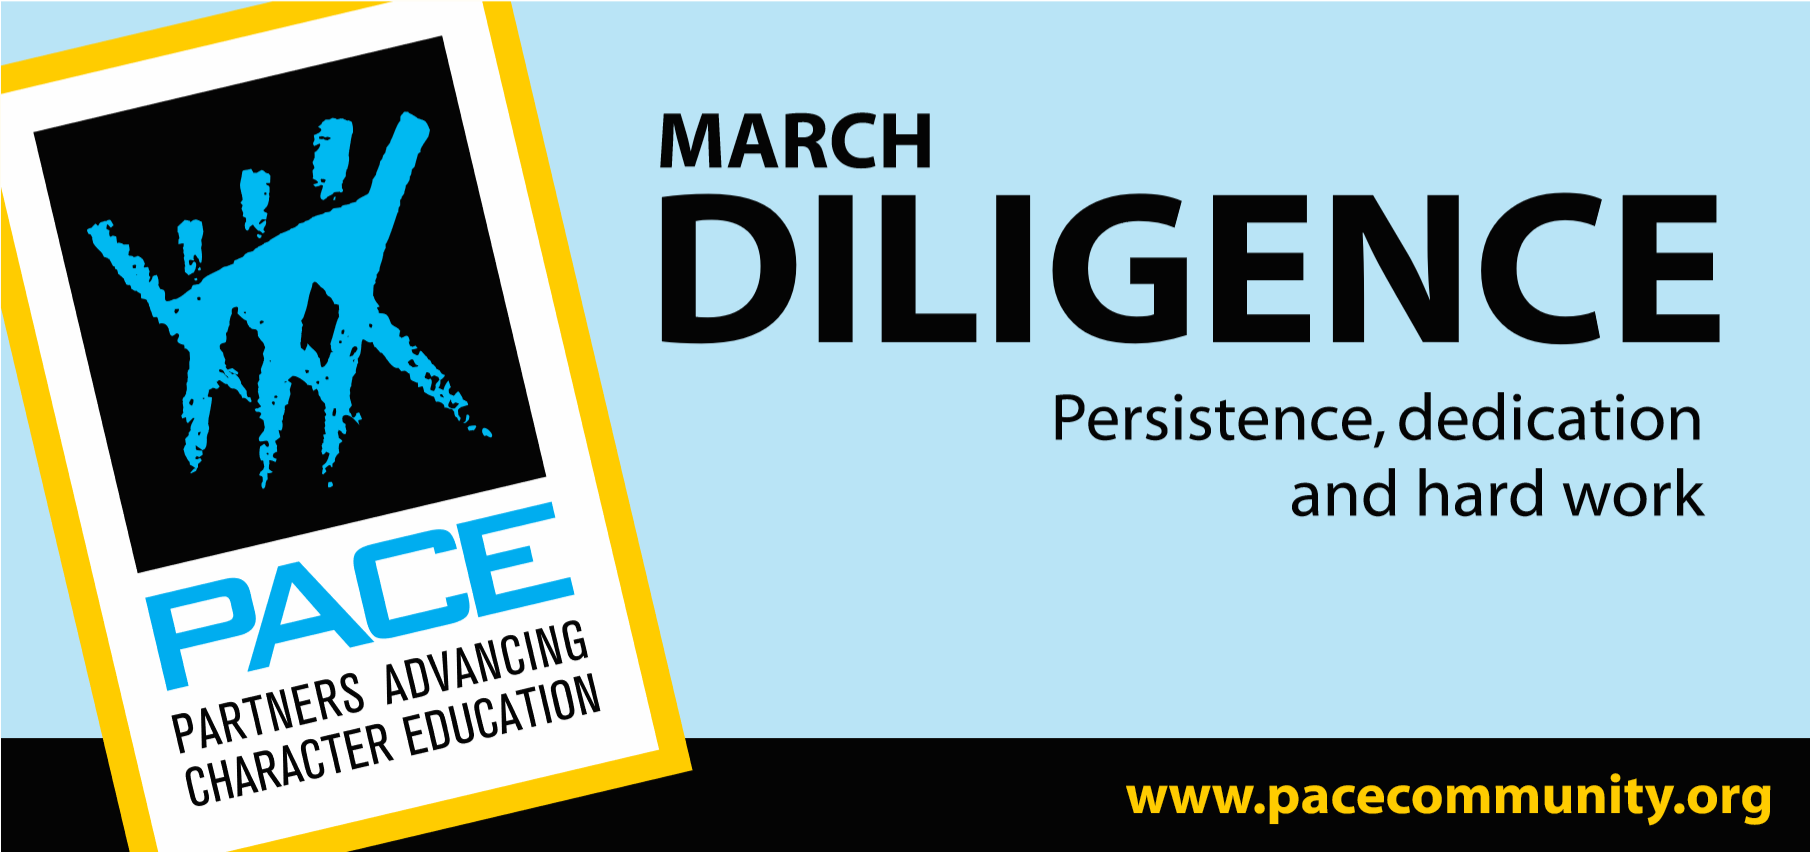 PACE March Diligence